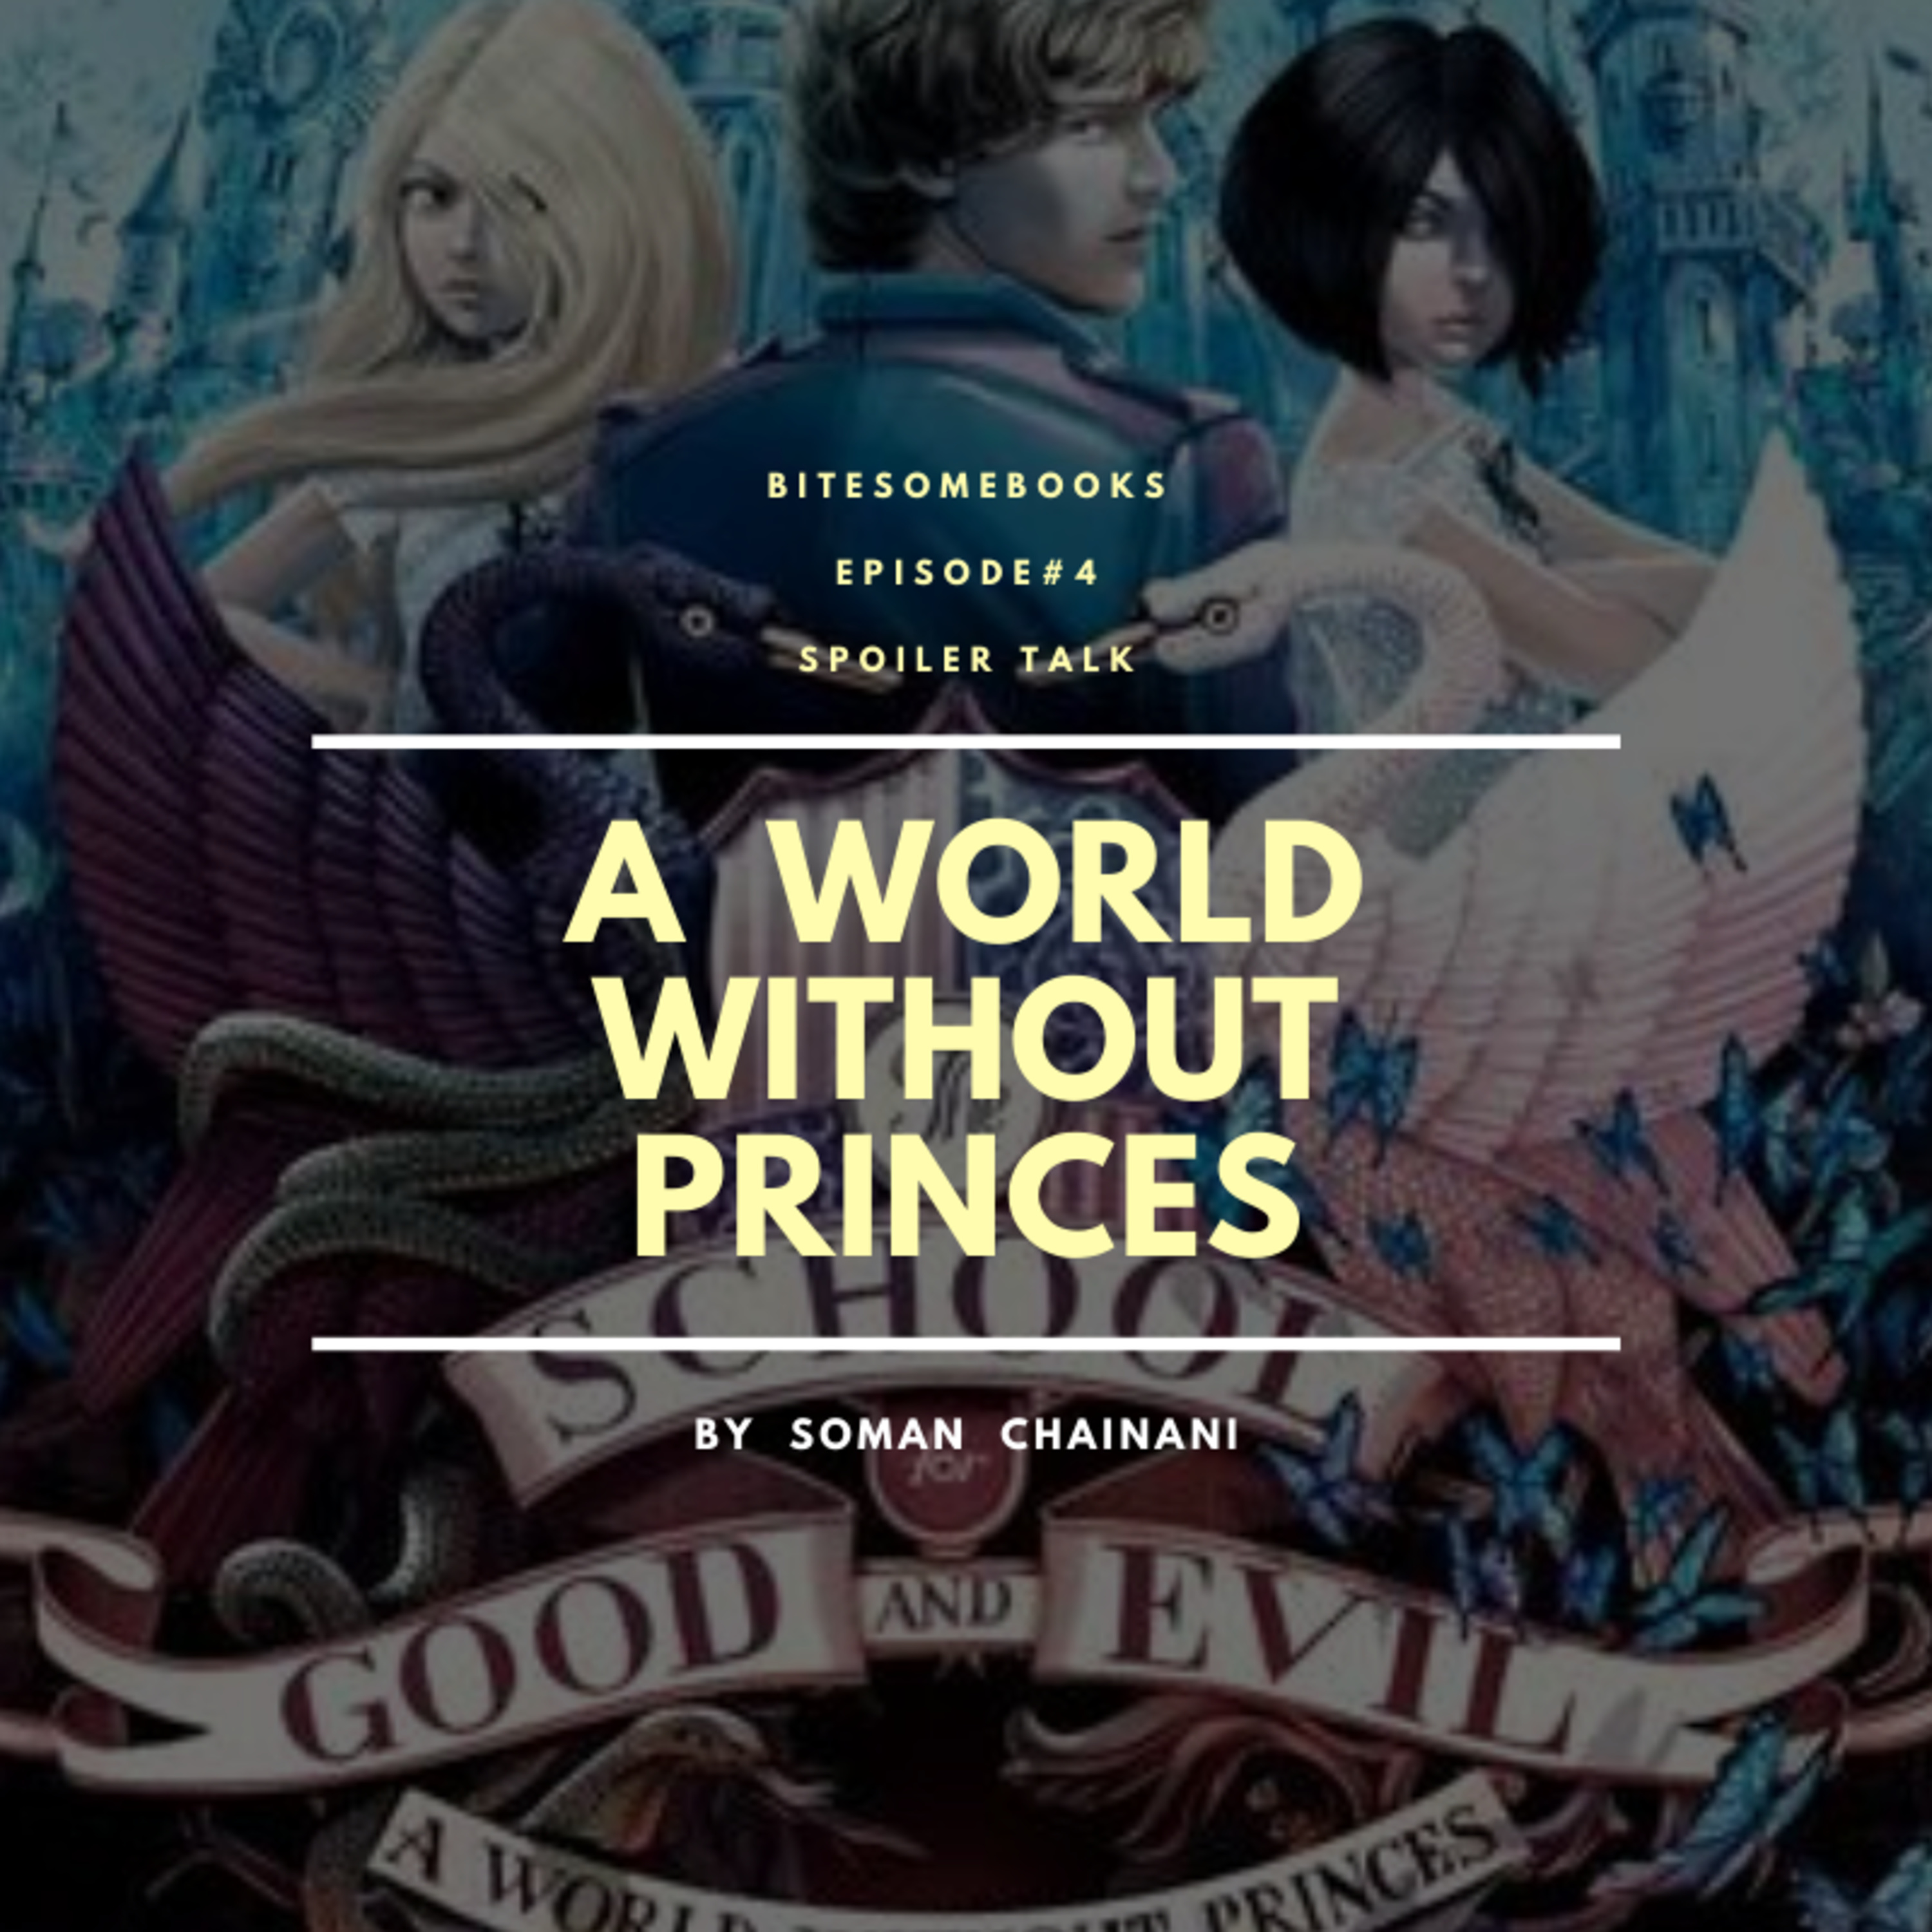 #4 A World Without Princes - SPOILER TALK